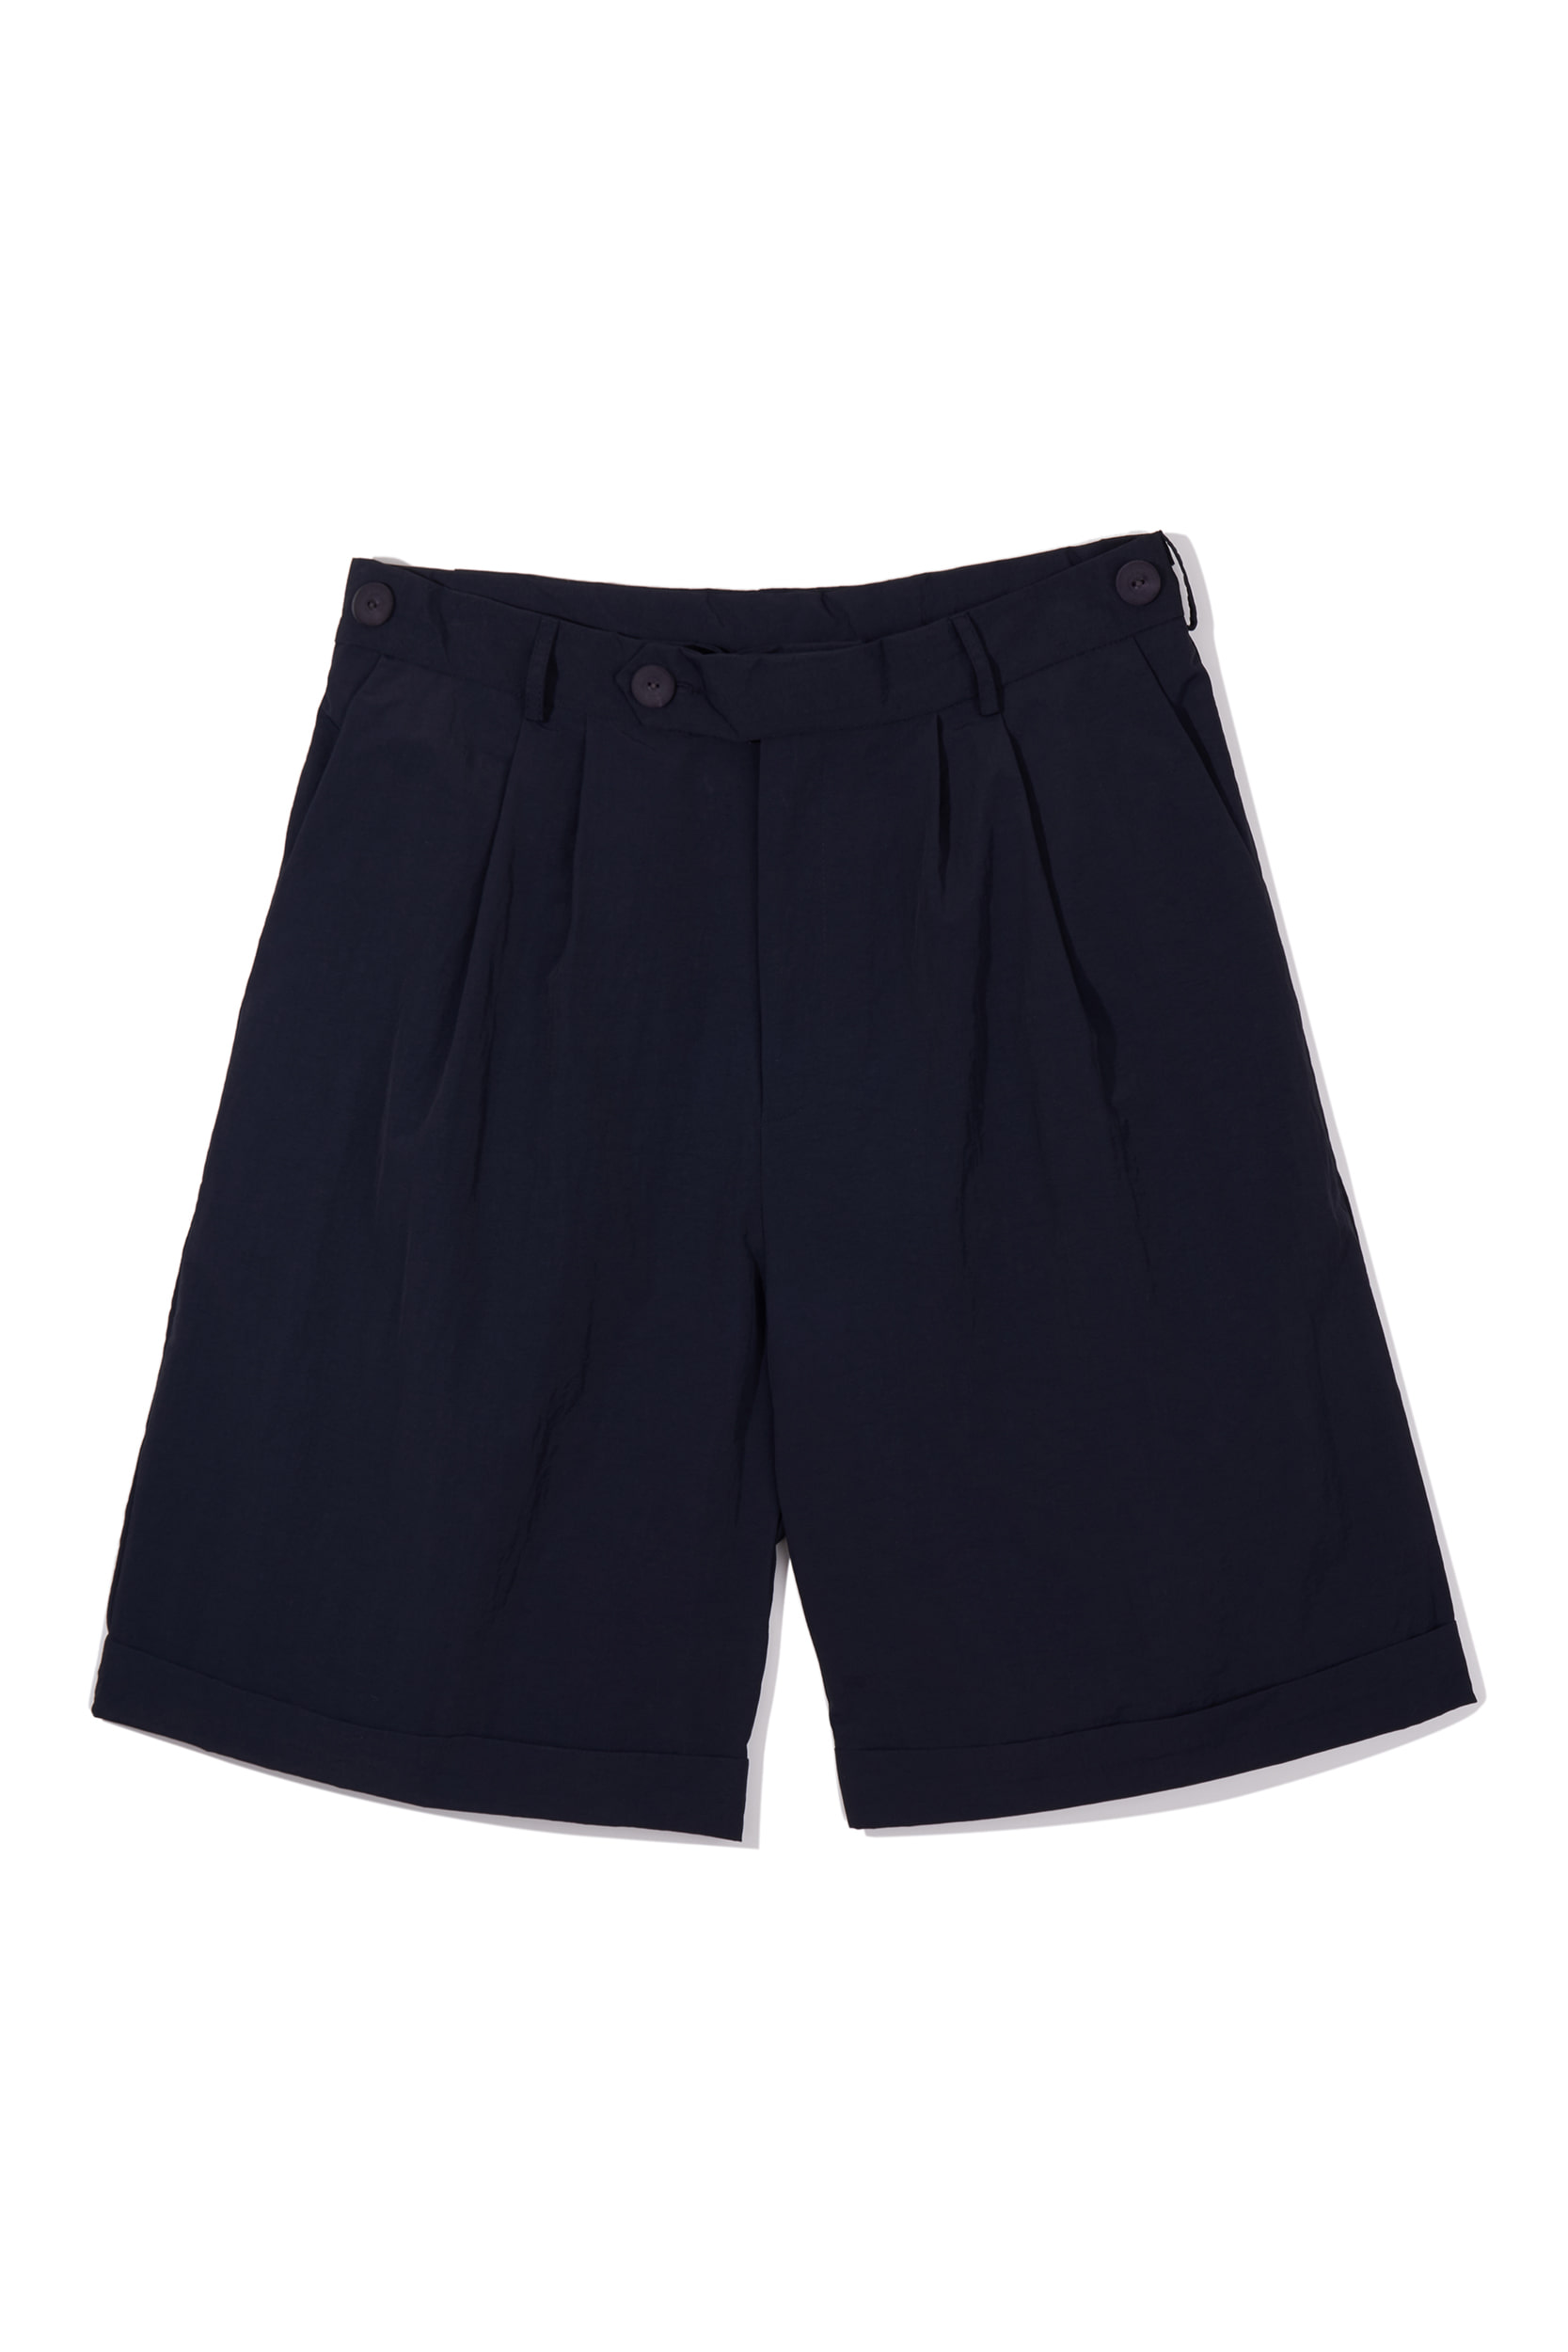 -[MOLTO] OVER SHORT PANTS